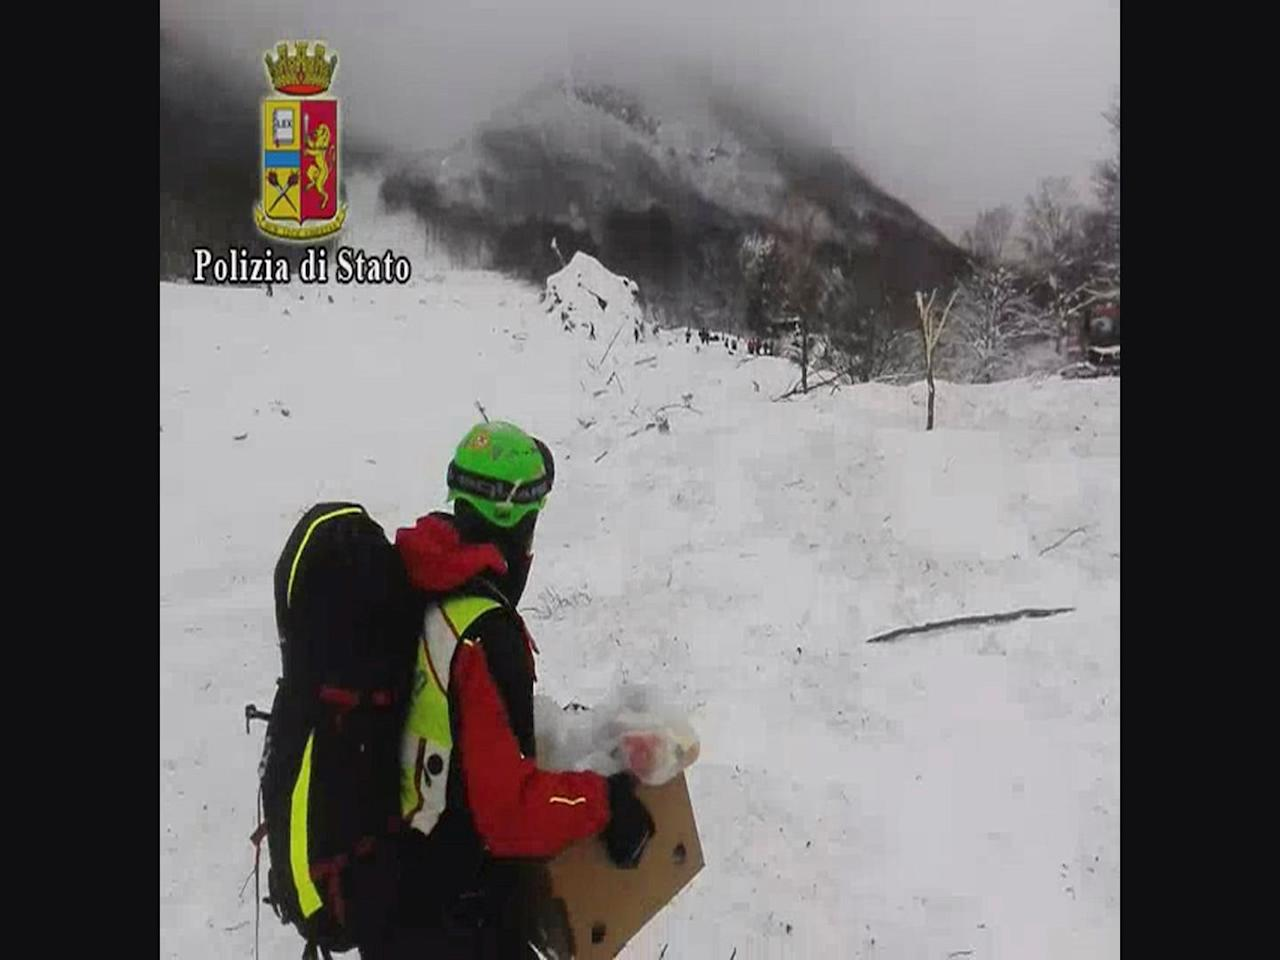 A rescuer carries food supplied by an Italian Police helicopter in front of the Hotel Rigopiano in Farindola, central Italy, hit by an avalanche, in this January 19, 2017 handout picture provided by Italian Police. Polizia di Stato/Handout via REUTERS   ATTENTION EDITORS - THIS IMAGE WAS PROVIDED BY A THIRD PARTY. EDITORIAL USE ONLY. NO RESALES. NO ARCHIVE.